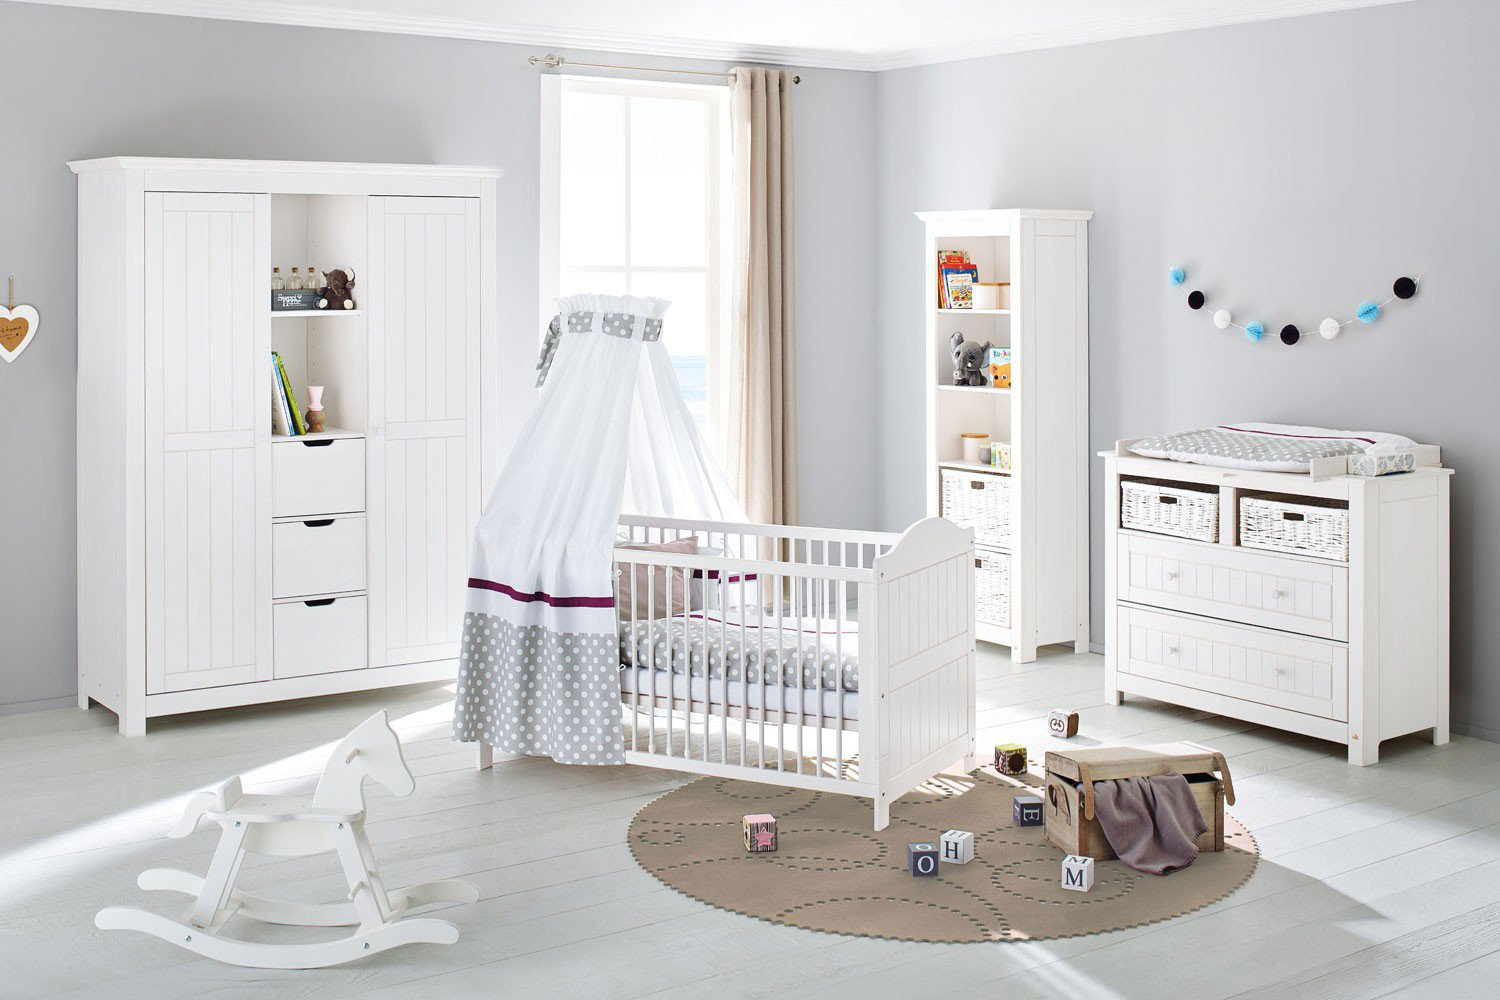 pinolino nina babyzimmer massiv kiefer wei m bel letz ihr online shop. Black Bedroom Furniture Sets. Home Design Ideas